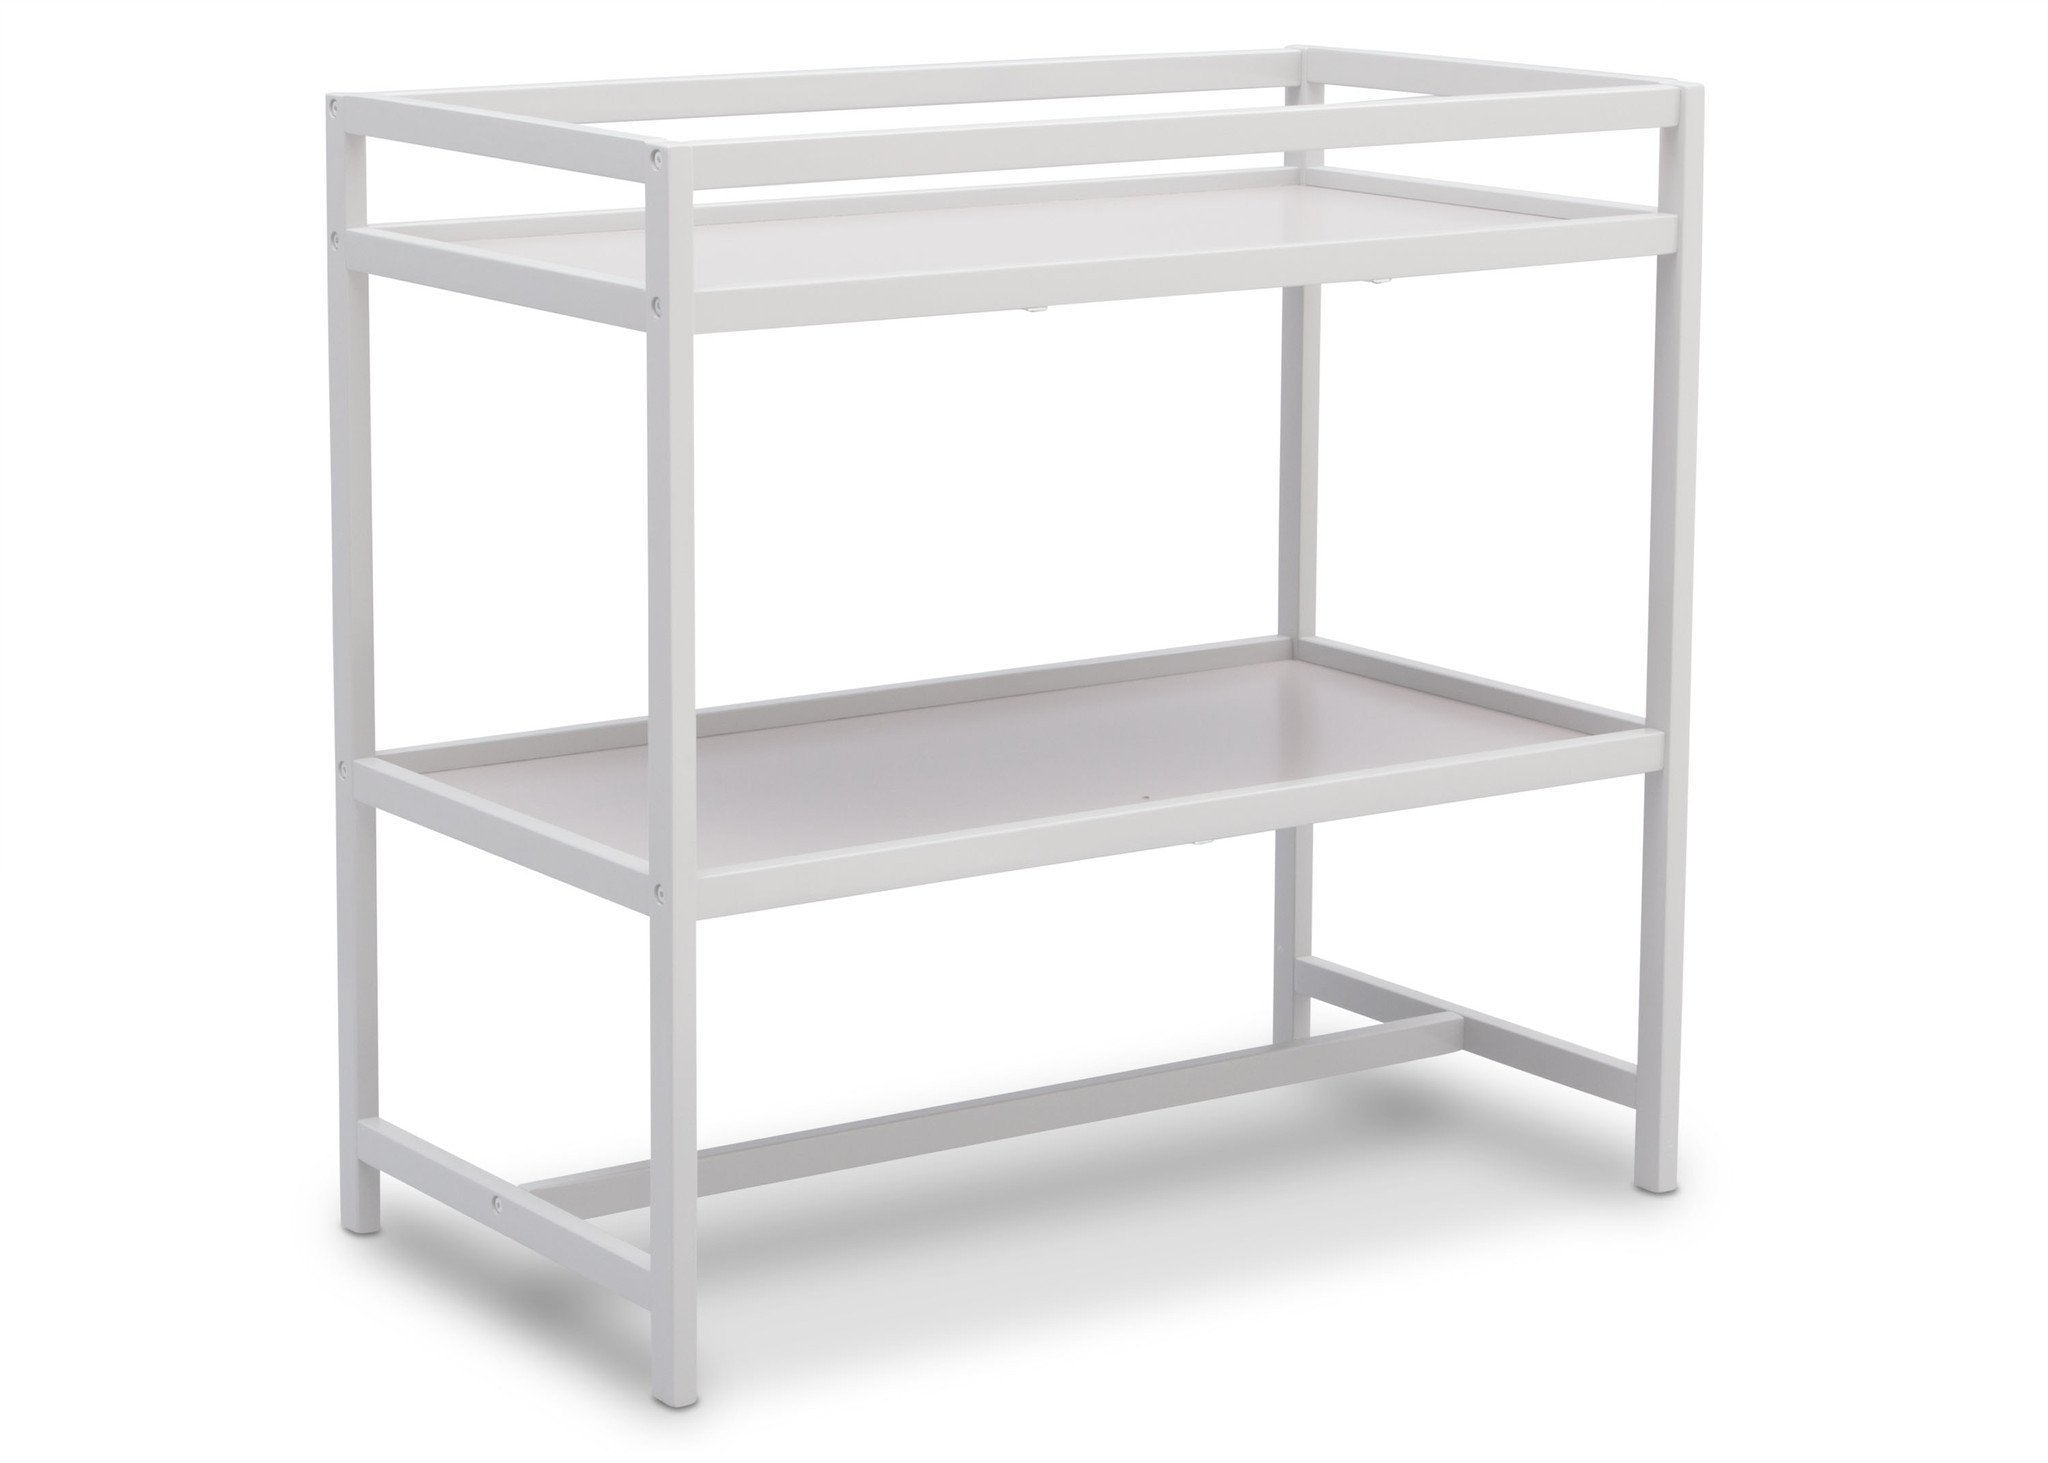 Delta Children White (100) Harbor Changing Table, Side View b2b